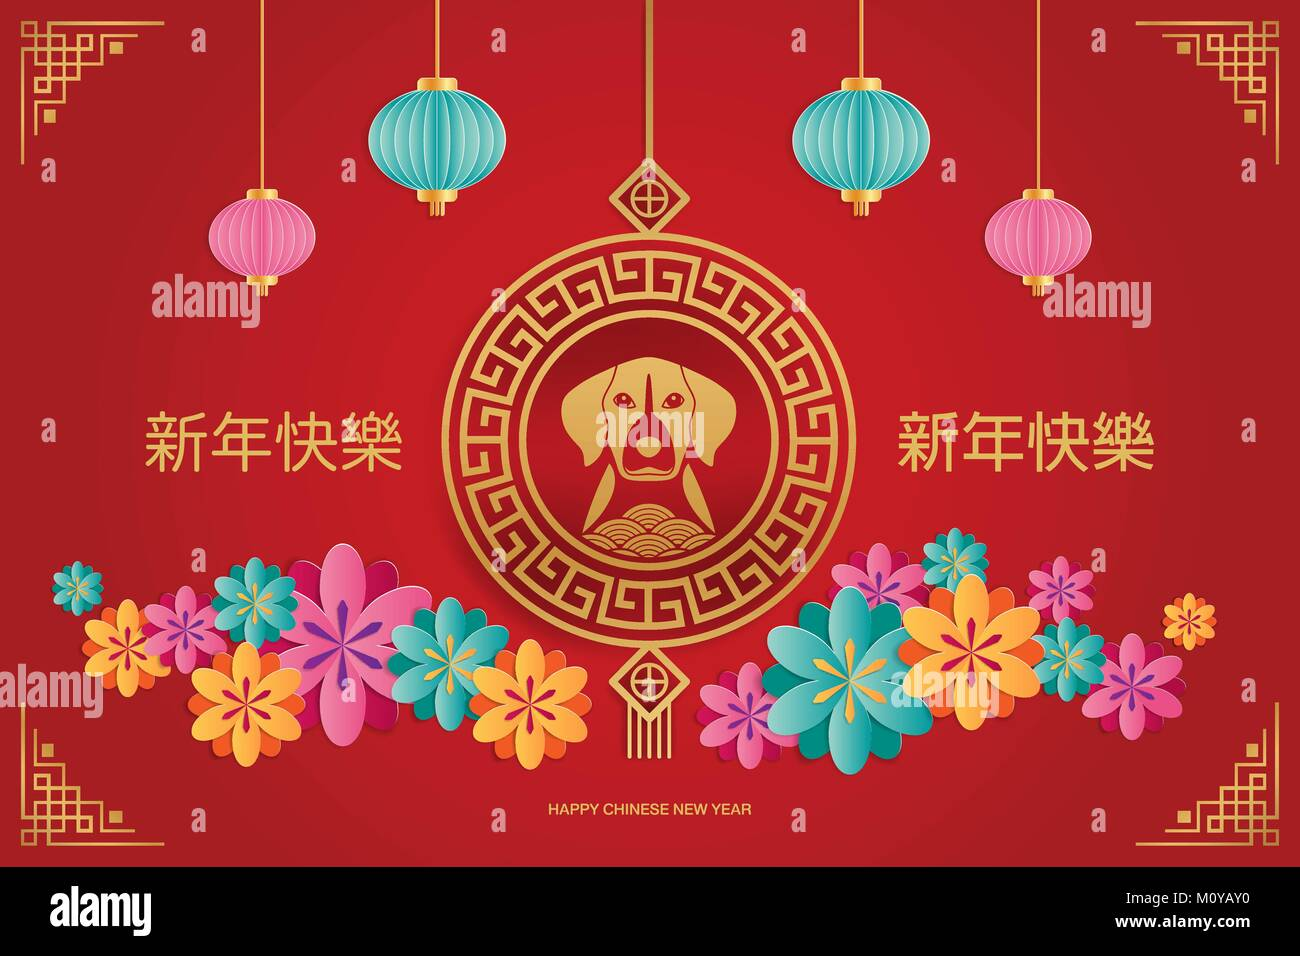 Chinese new year greeting card with dog cherry blossom lantern chinese new year greeting card with dog cherry blossom lantern and traditional asian patterns paper art styles vector illustration translation o m4hsunfo